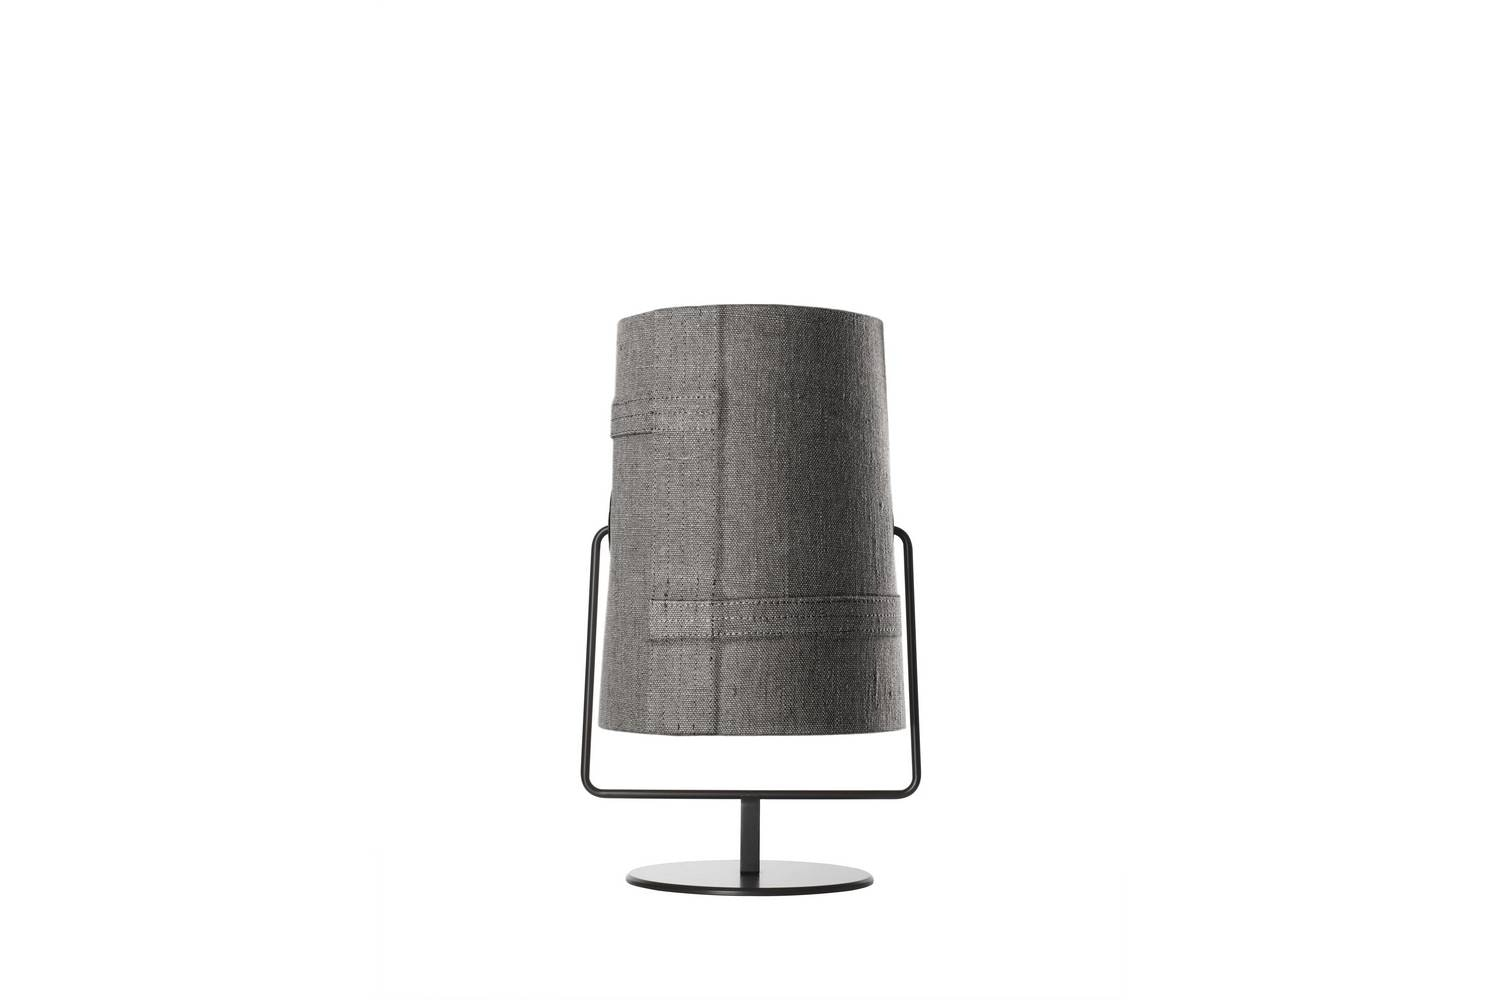 Fork Maxi Table Lamp by Successful Living from DIESEL for Foscarini